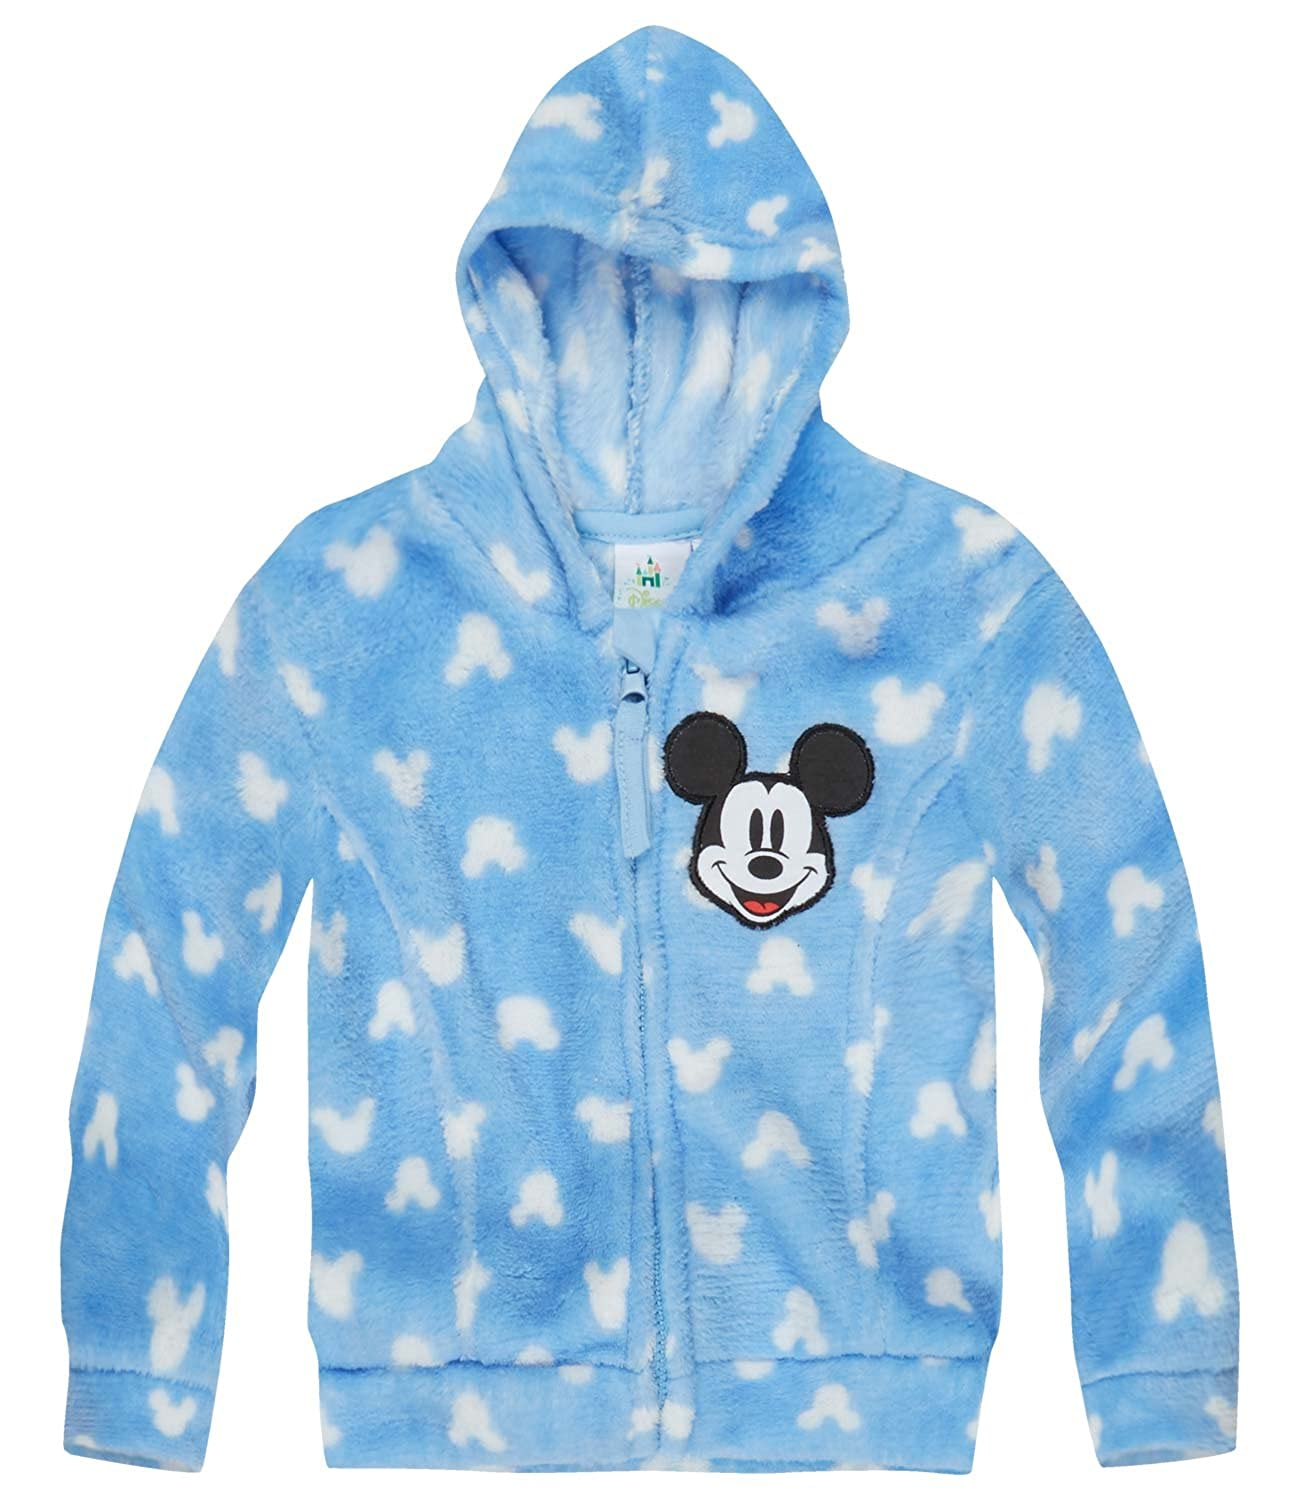 Disney Mickey Babies Giacca in pile, Coral 2016 Collection - blu